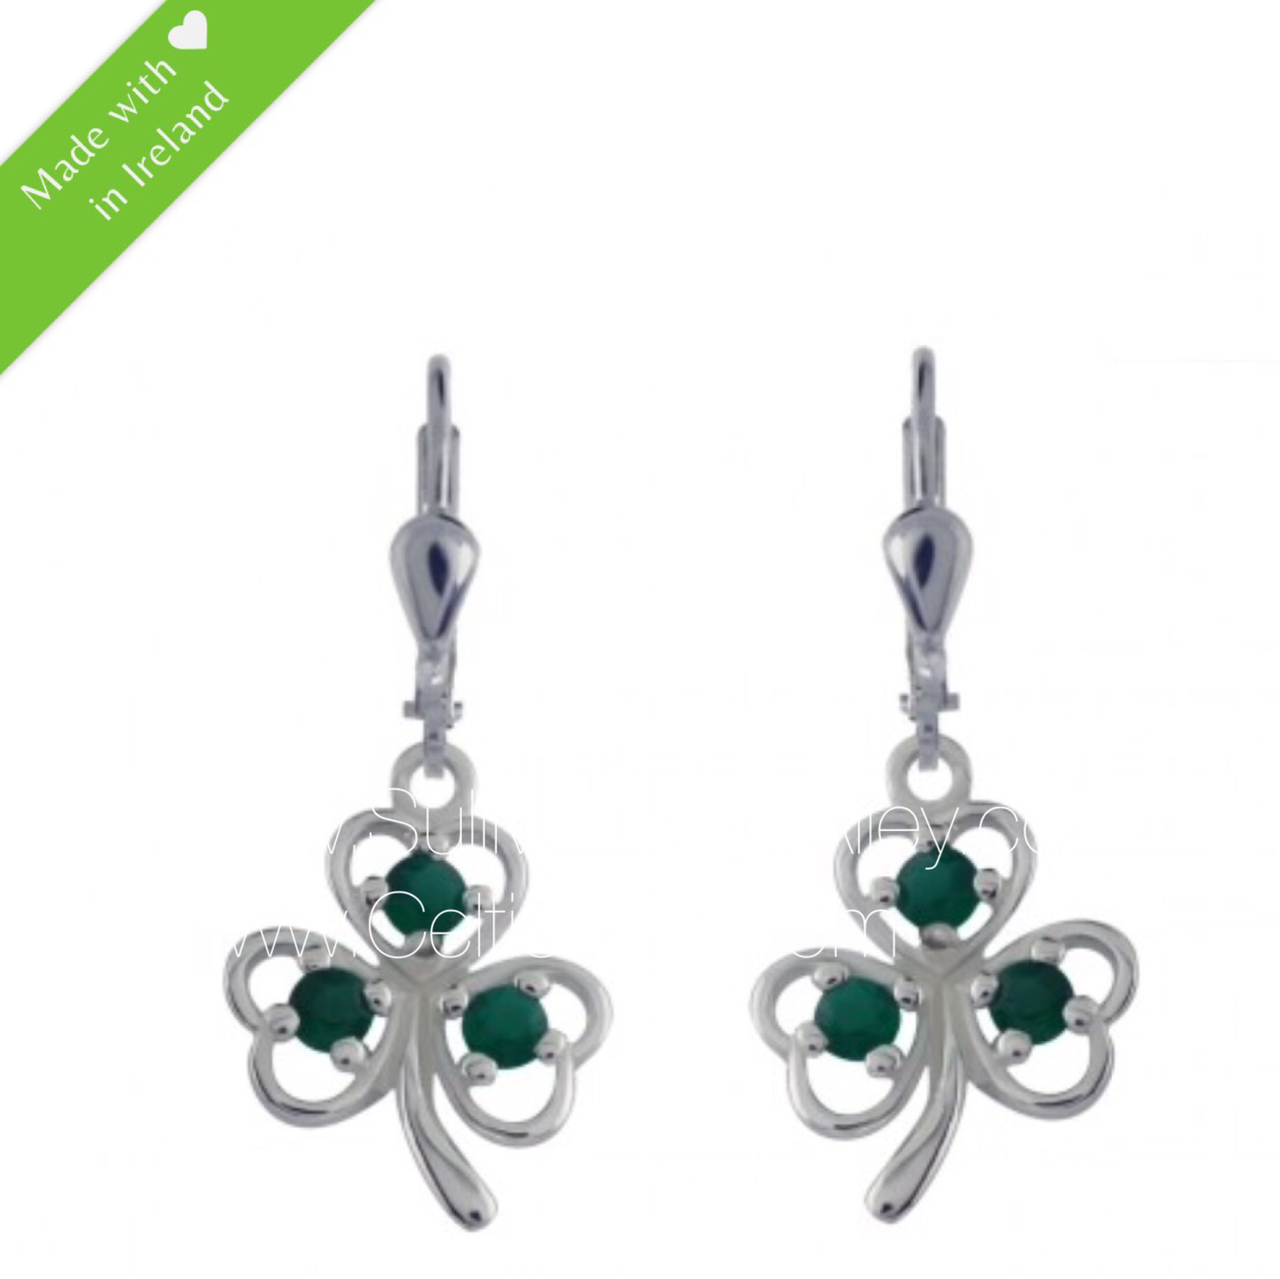 5e101a4e4 3 Stone Shamrock Earrings Sterling Silver With Green Agate ...